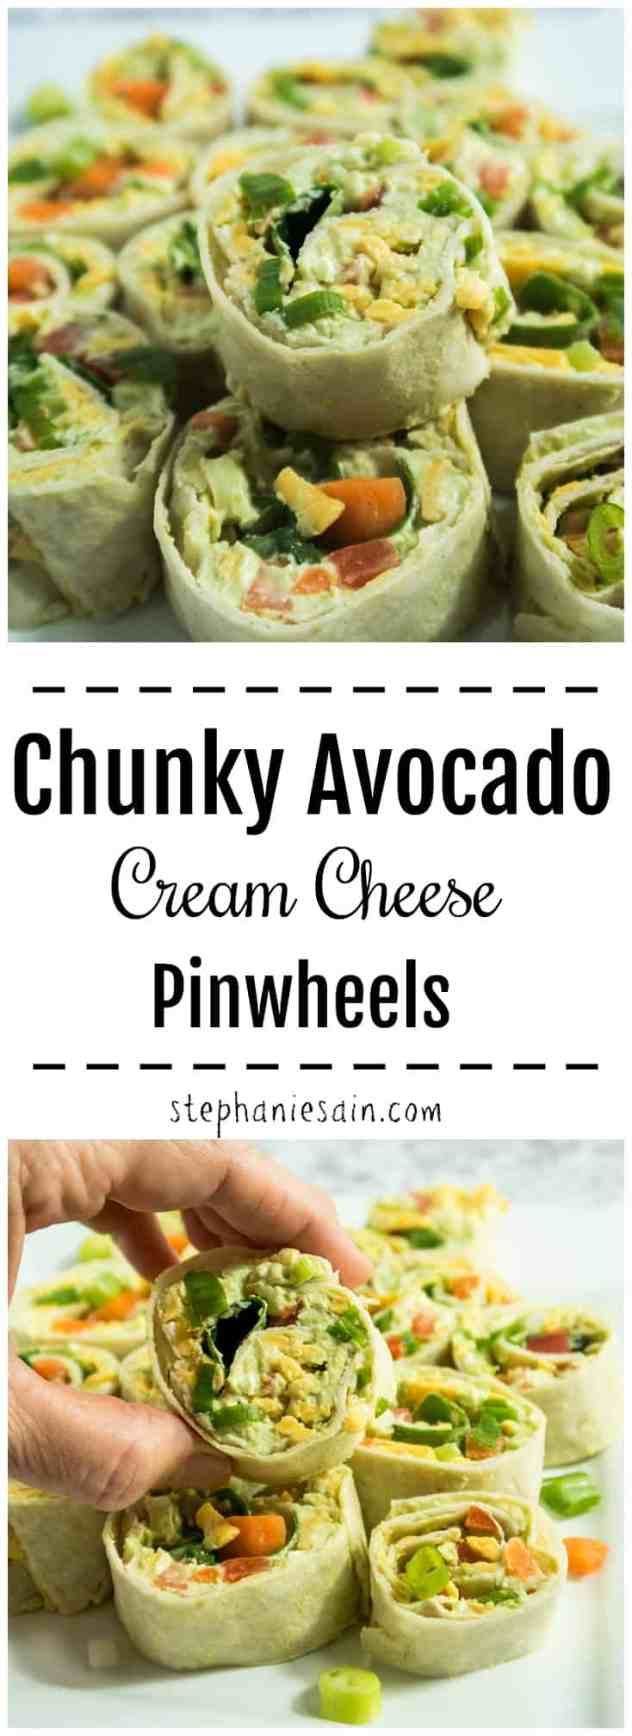 Chunky Avocado Cream Cheese Pinwheels are made with a tasty avocado spread and then loaded with all your favorite veggies. The perfect bite sized snack or even appetizer for entertaining. Gluten free & Vegetarian.